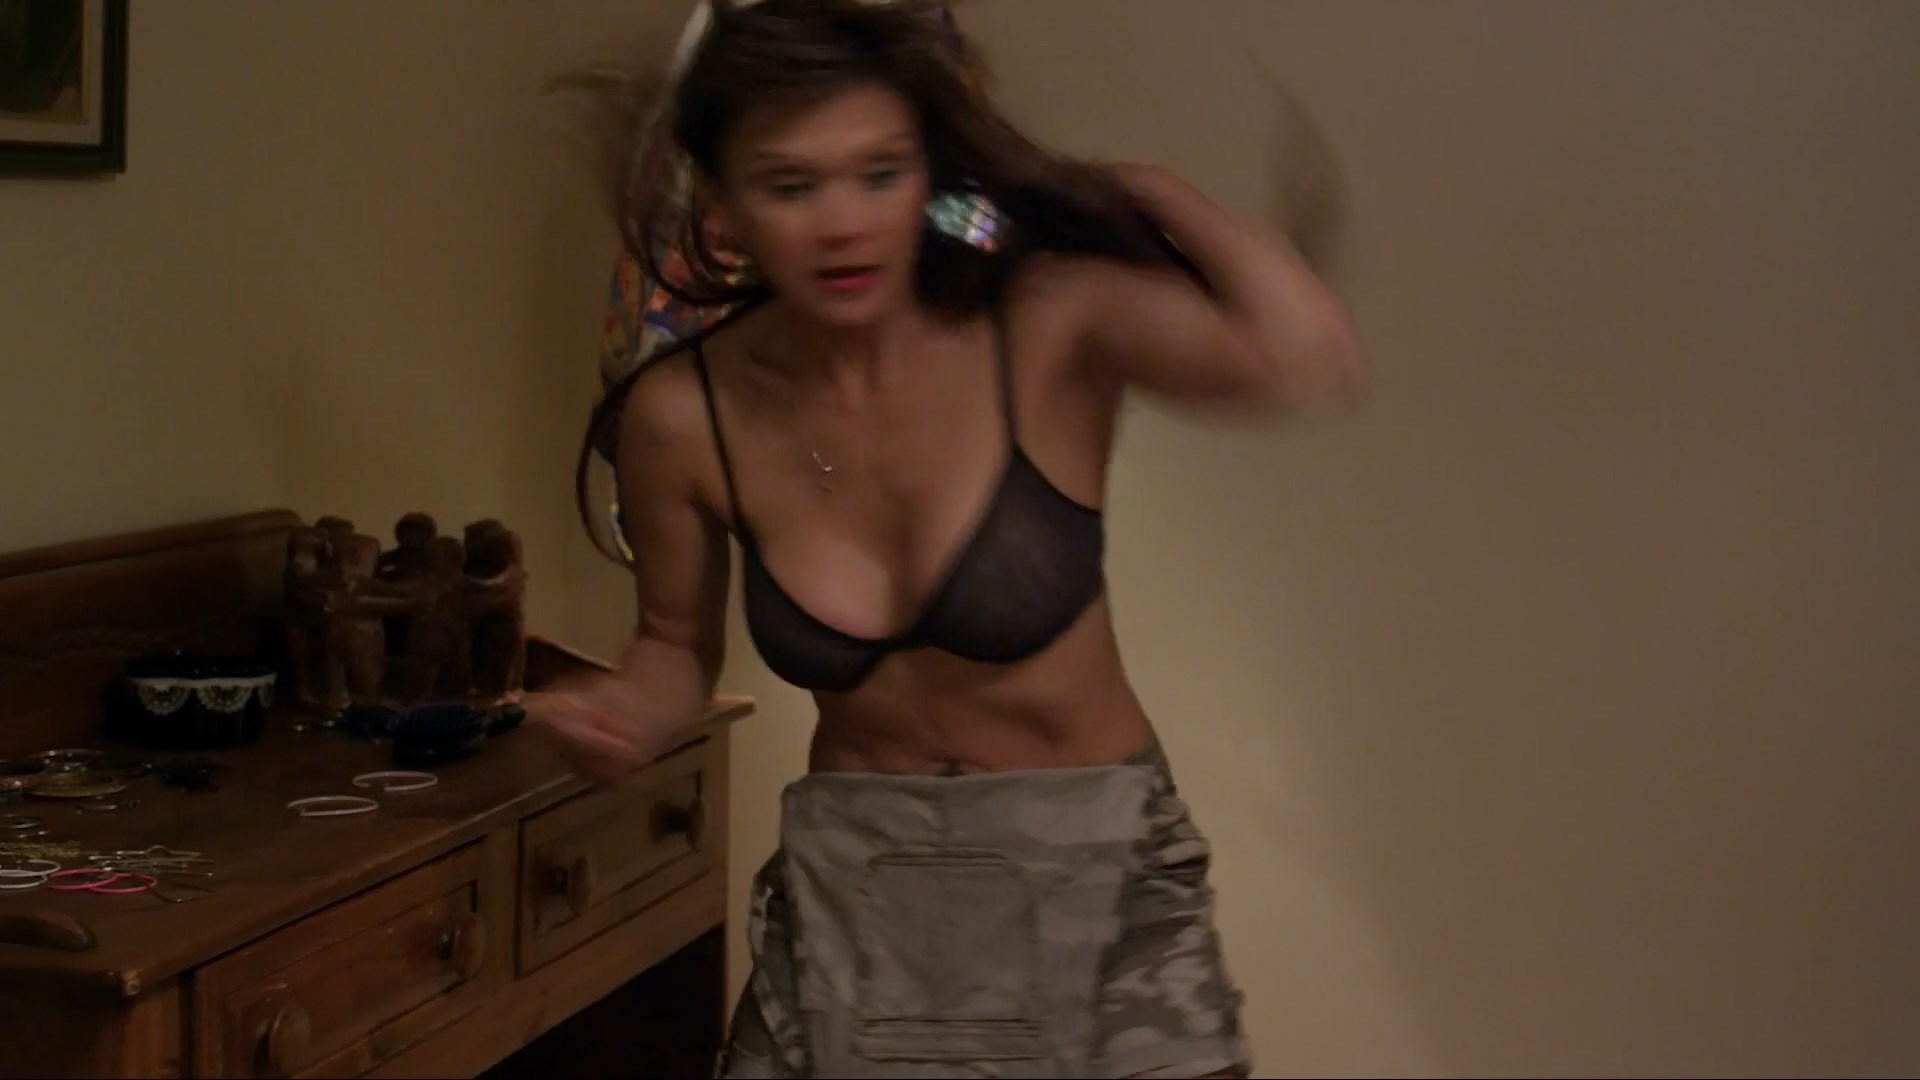 Nia Peeples sexy - The Untold Story (2019)